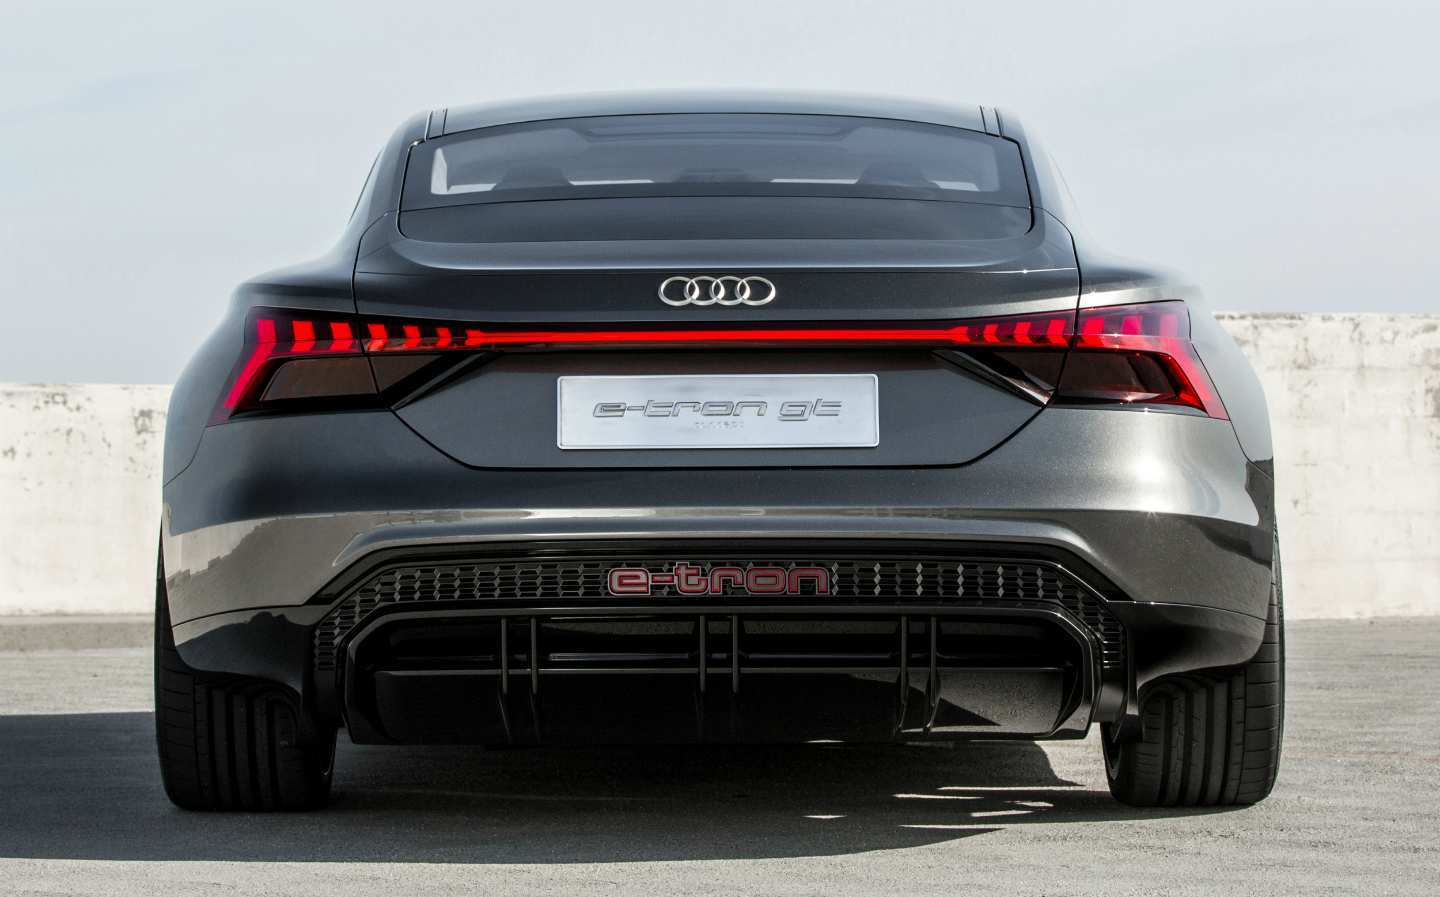 70 The Best Audi E Tron Gt Price 2020 Engine